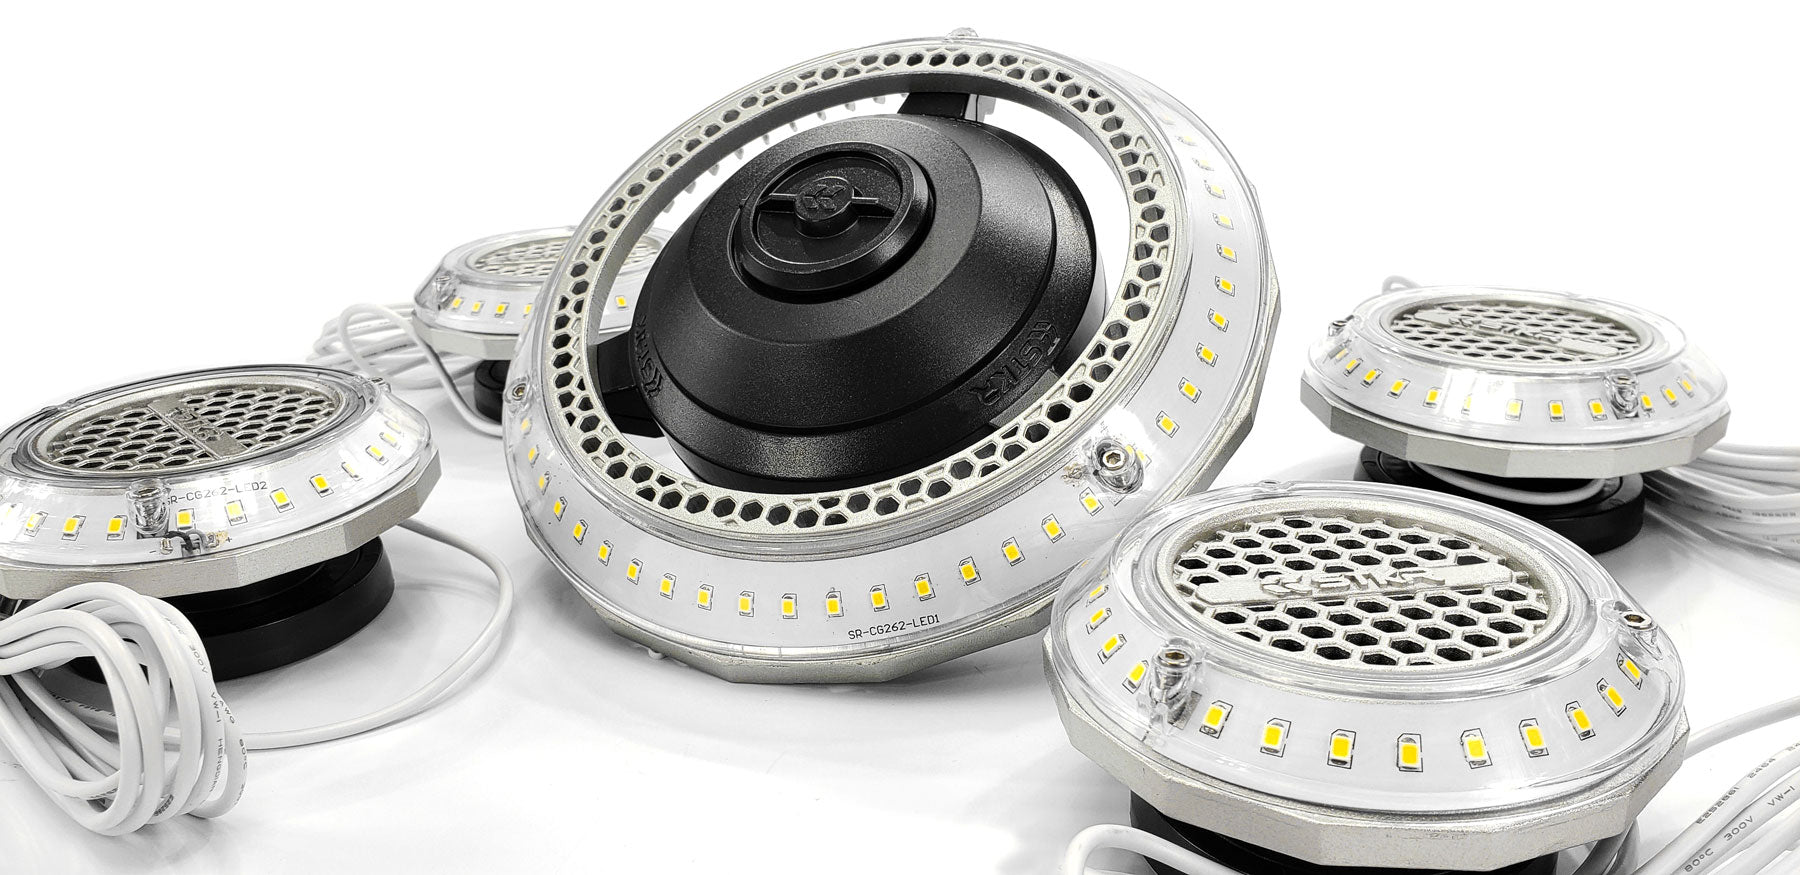 MPi - Multi-Point Illumination Motion Sensor Garage Light System | STKR Concepts